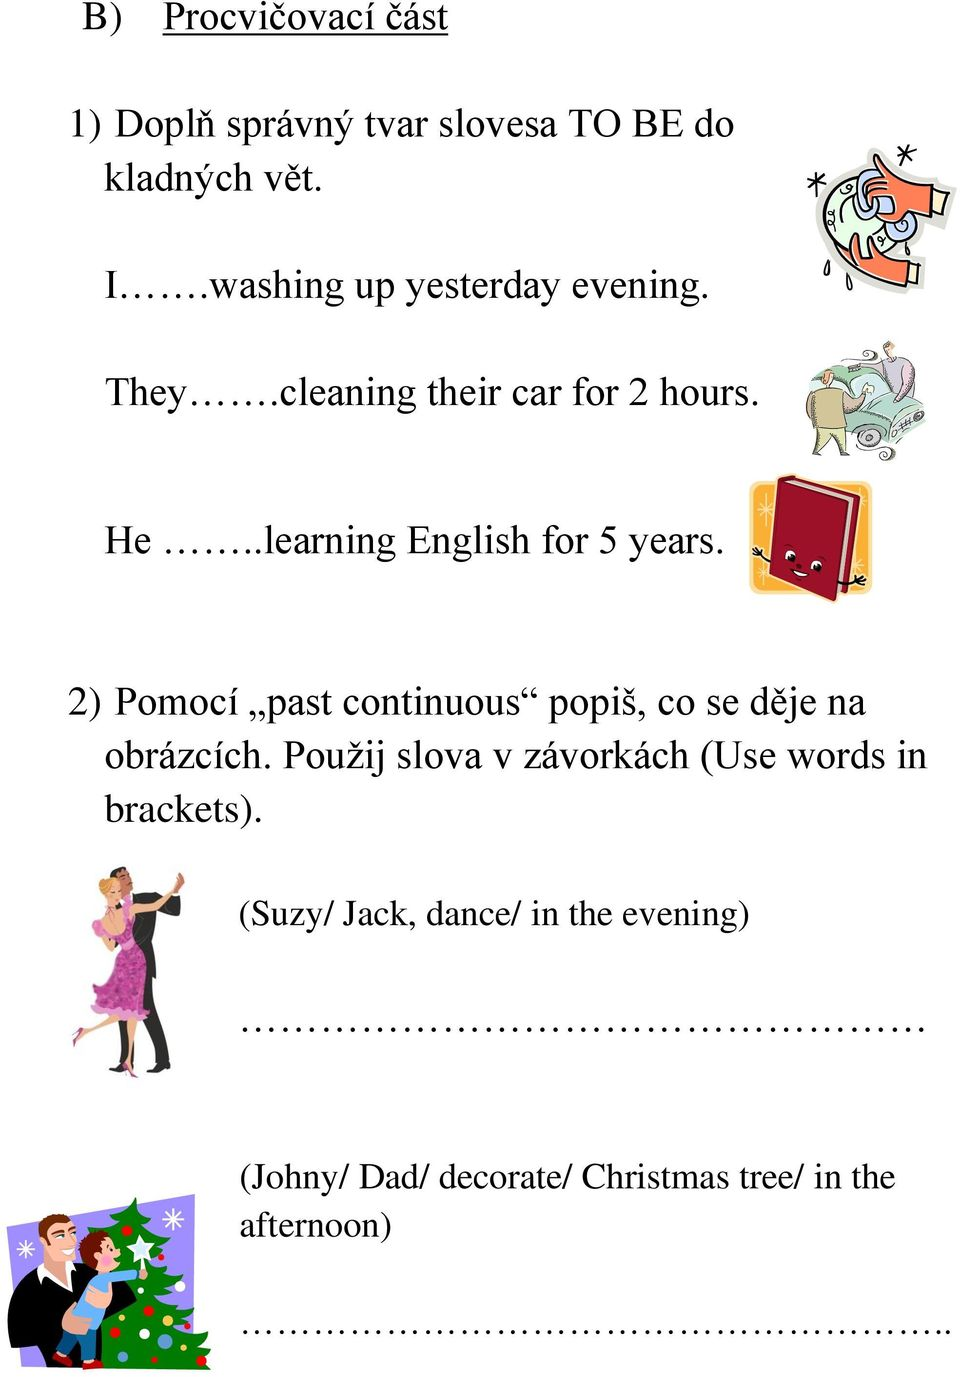 .learning English for 5 years. 2) Pomocí past continuous popiš, co se děje na obrázcích.